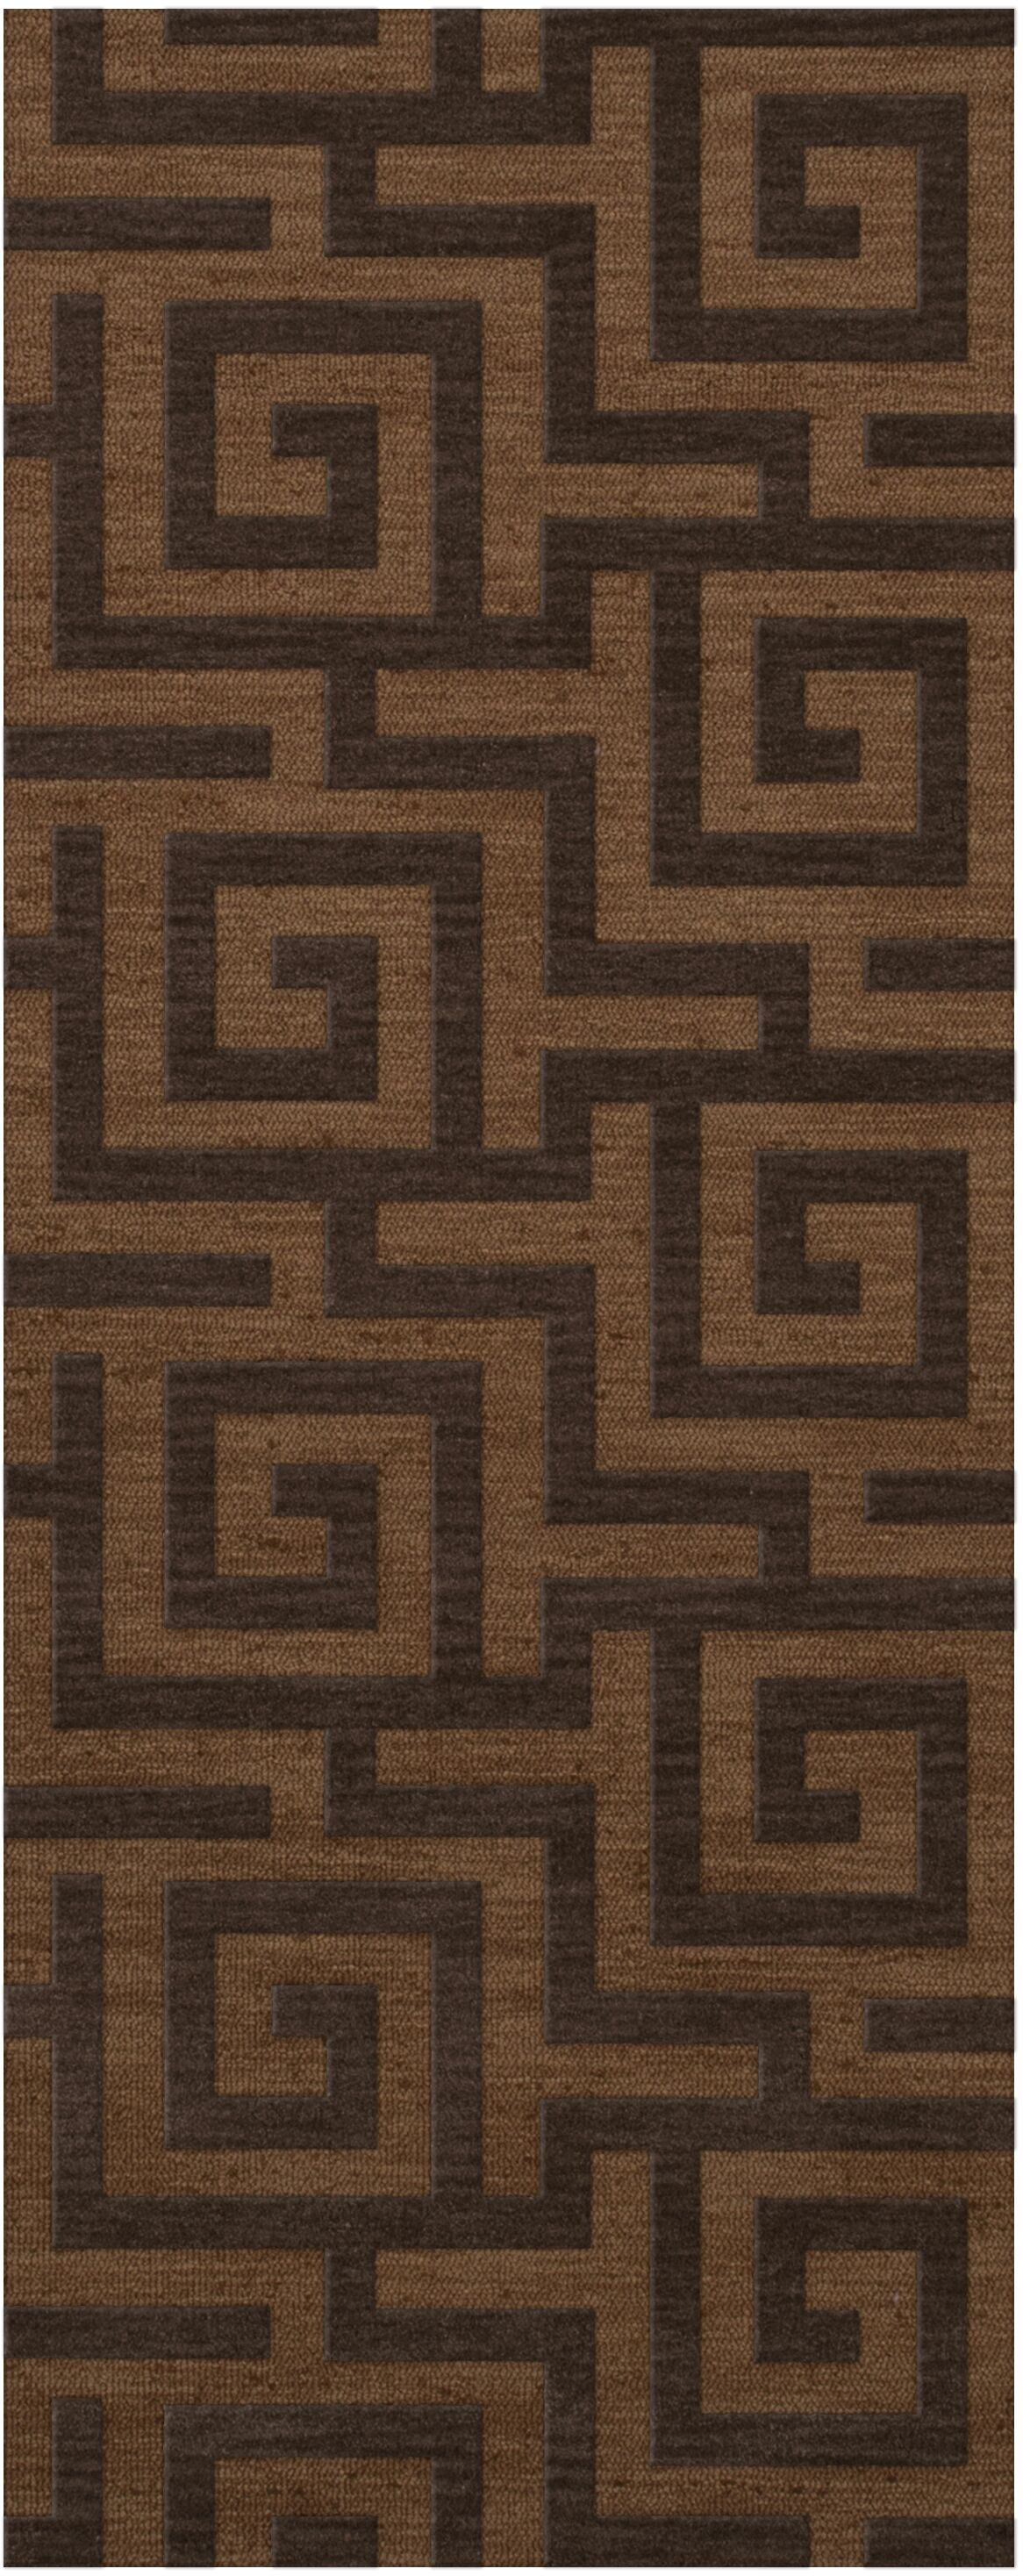 Dover Tufted Wool Caramel Area Rug Rug Size: Runner 2'6